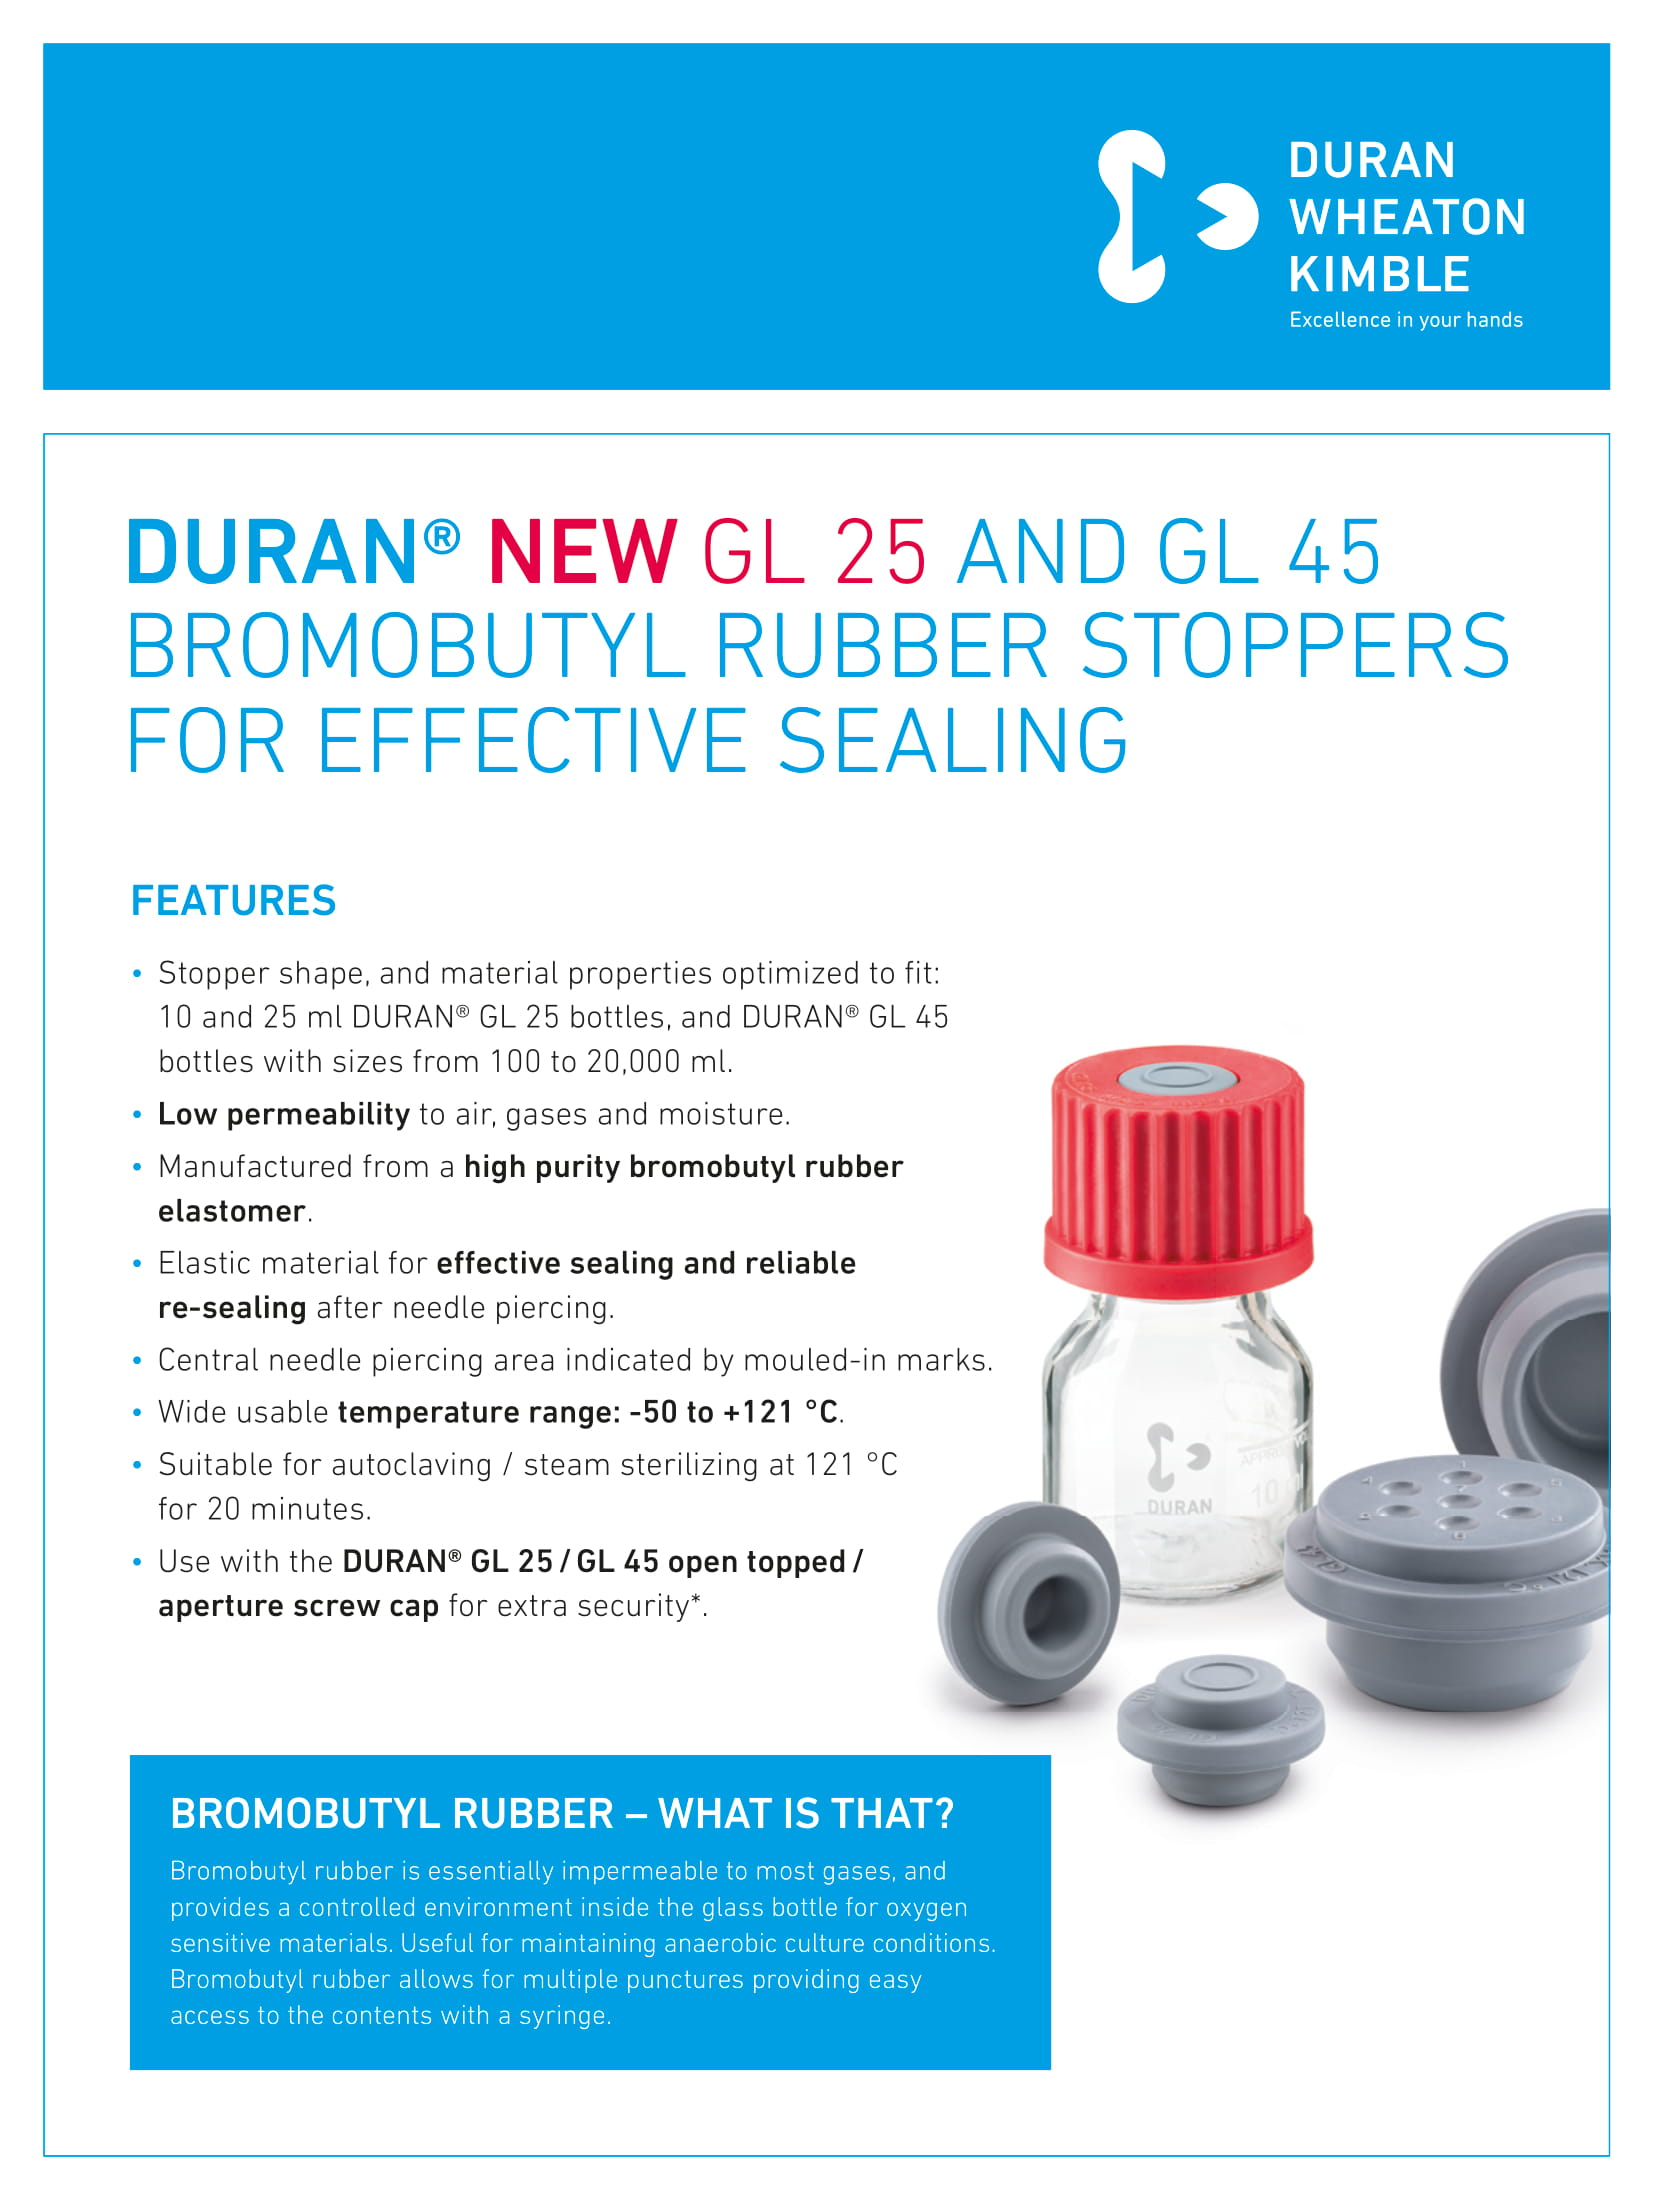 DURAN® GL 25 and GL 45 Bromobutyl Rubber Stoppers